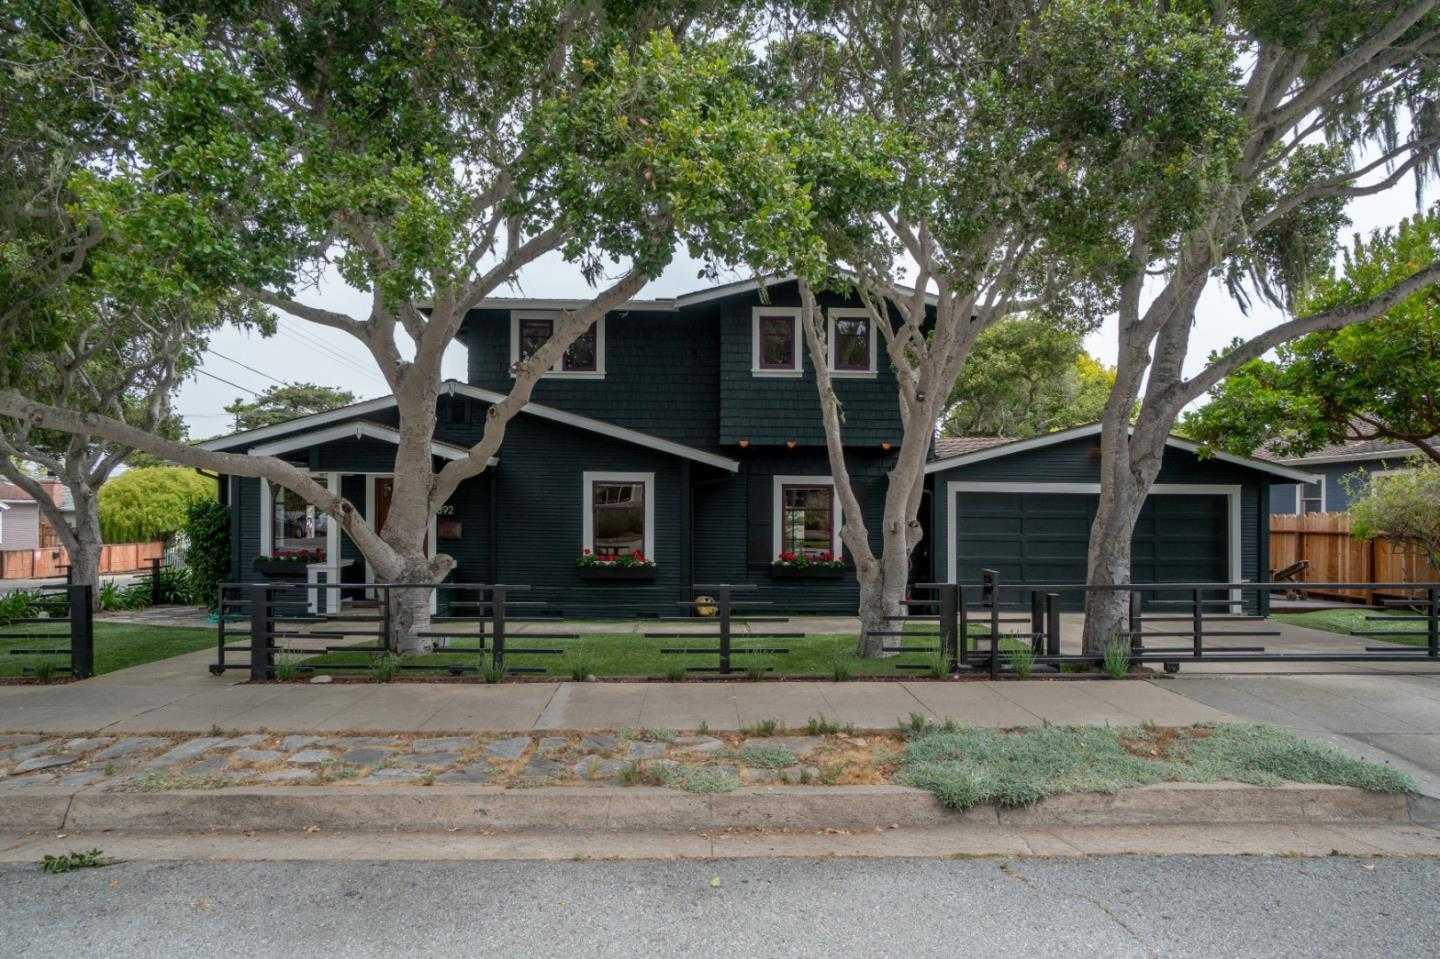 $1,475,000 - 3Br/2Ba -  for Sale in Pacific Grove